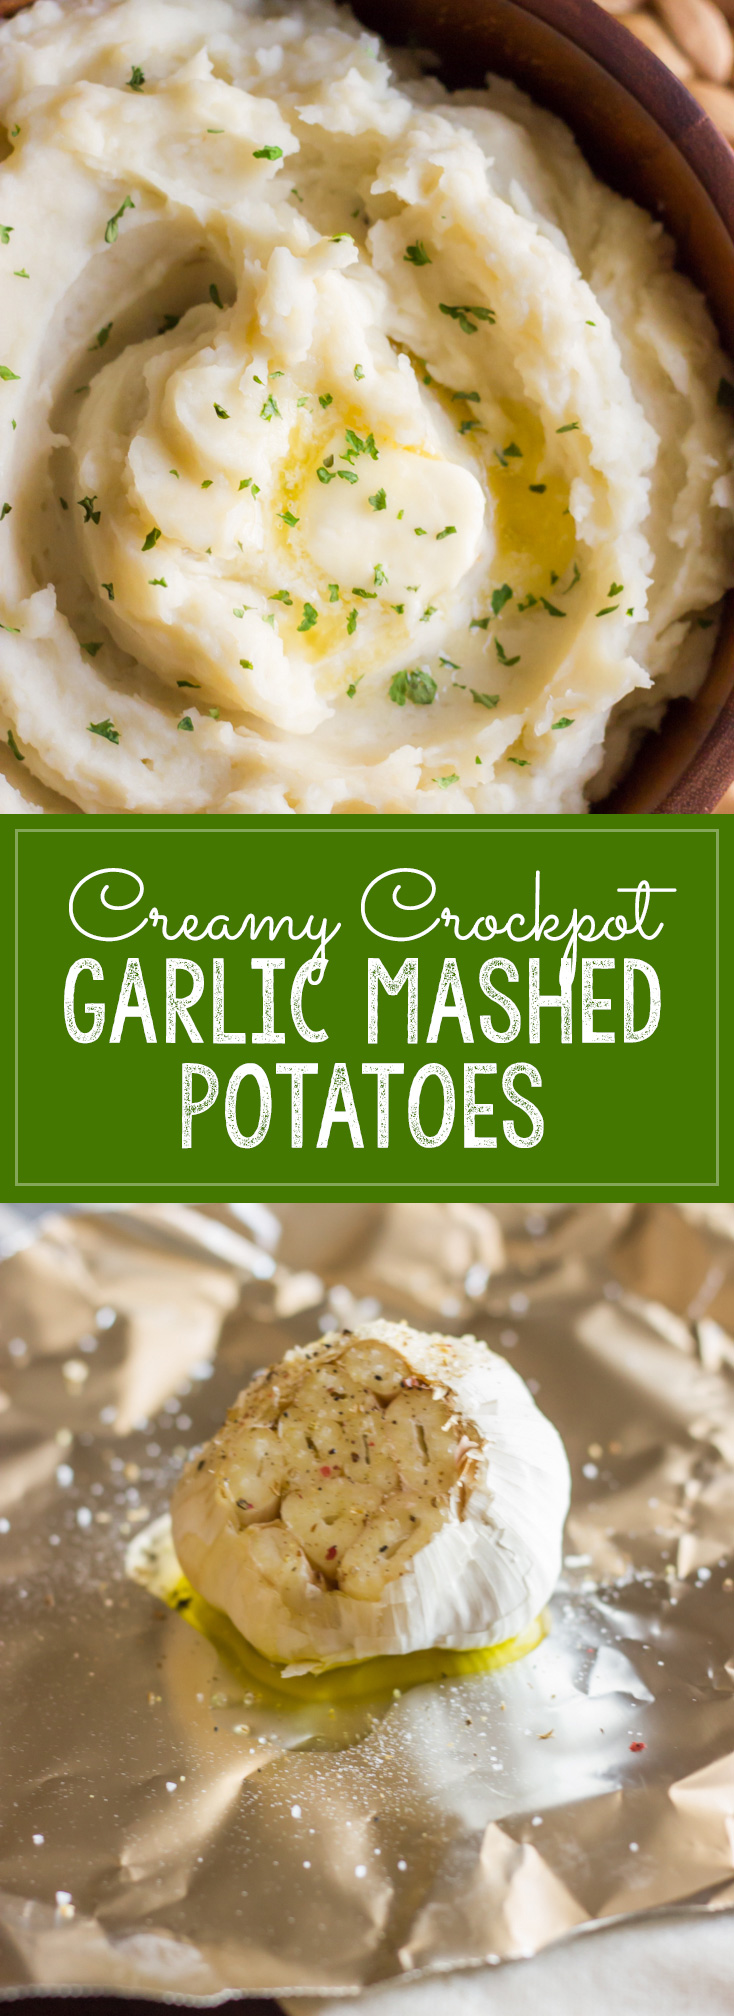 Easy Creamy Crockpot Roasted Garlic Mashed Potatoes - perfectly fluffy and creamy!